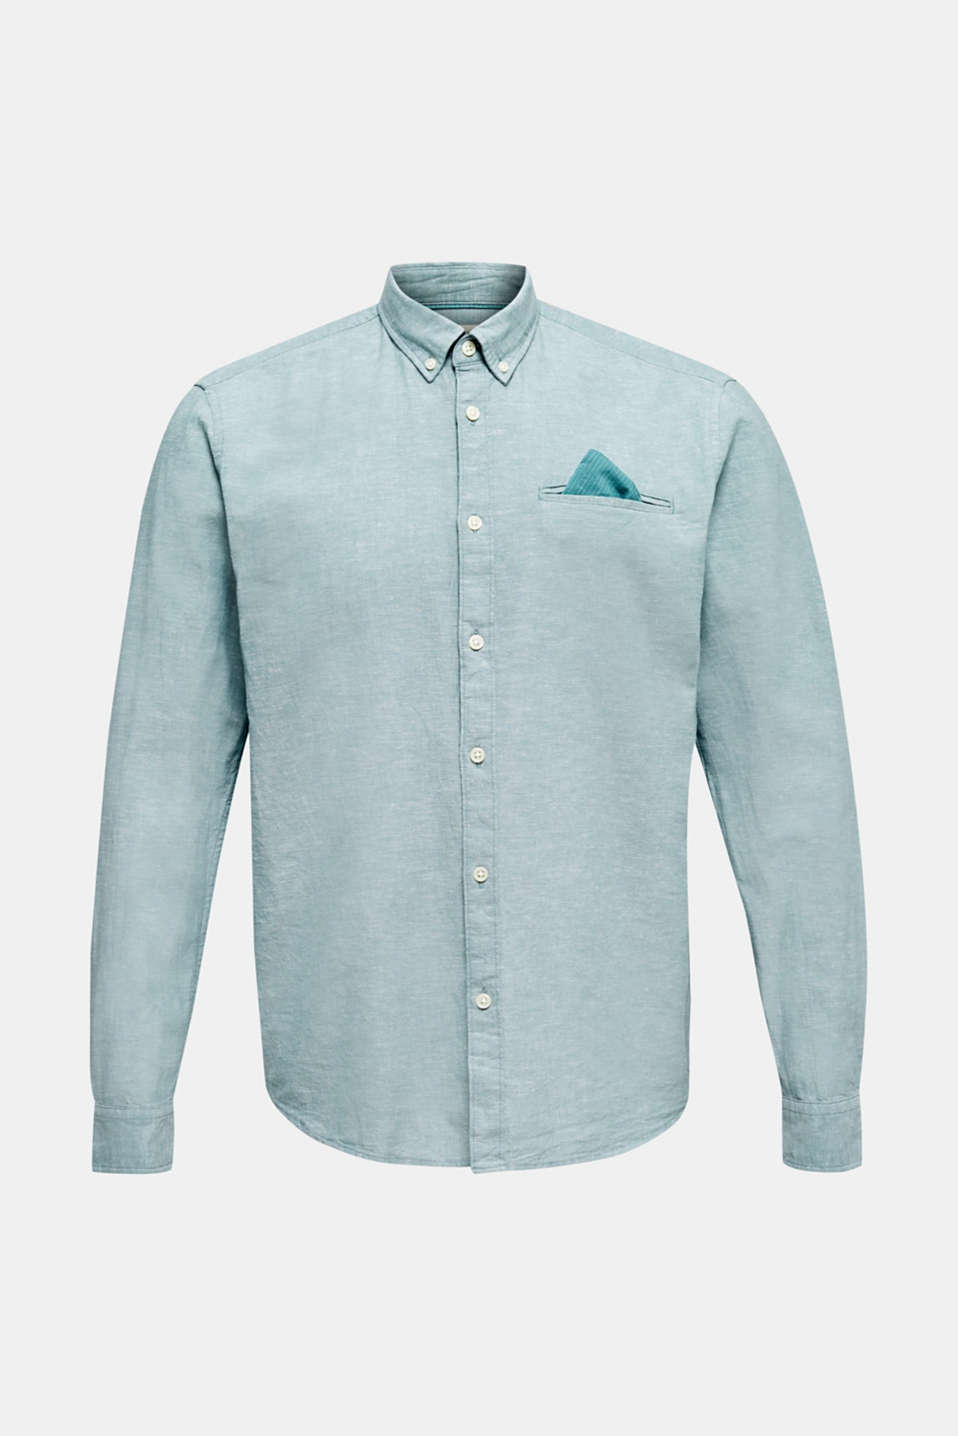 Shirt with linen and a button-down collar, TEAL GREEN 5, detail image number 6